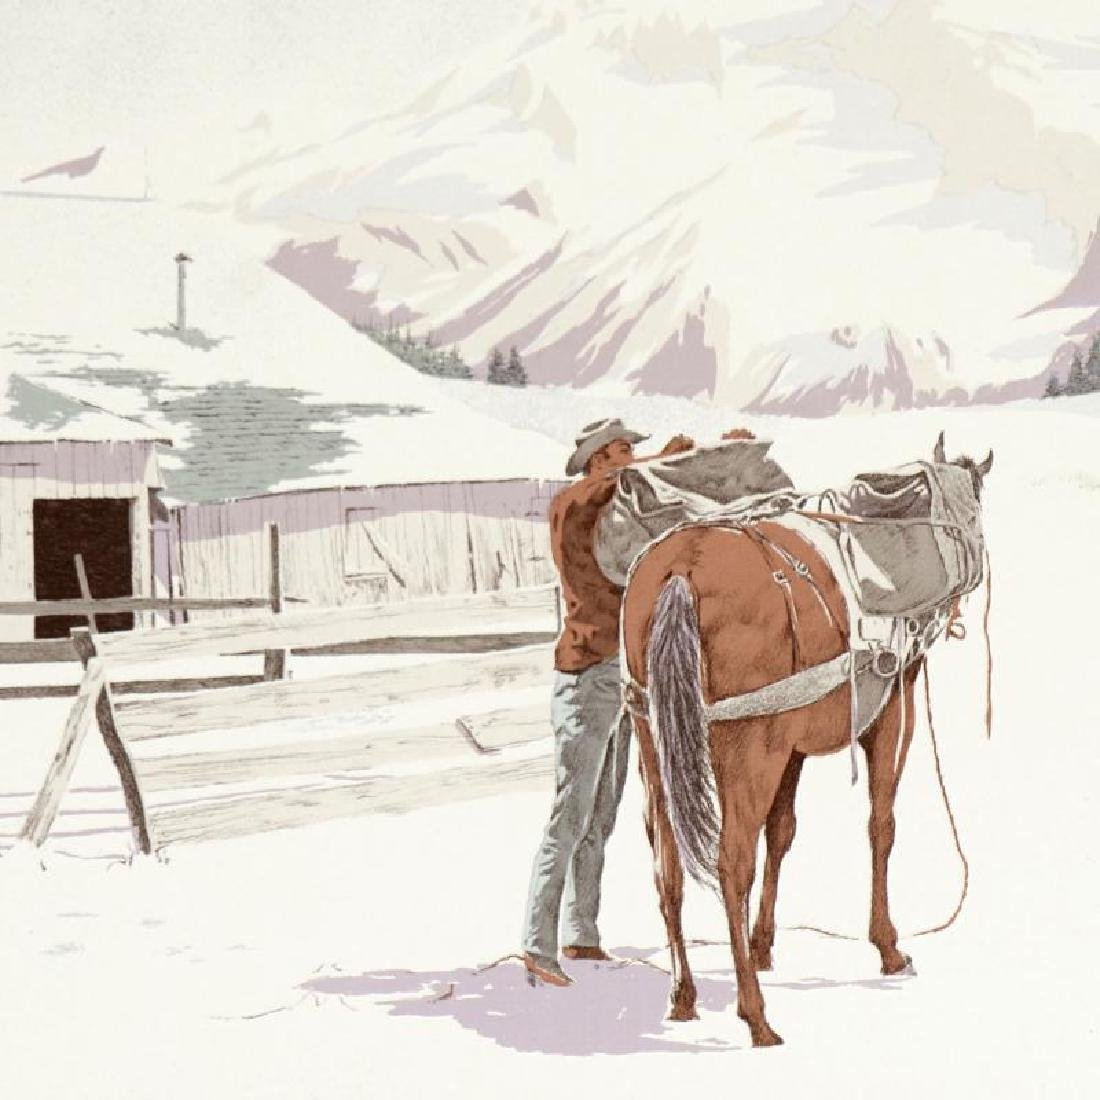 Saddling Up by Nelson, William - 2